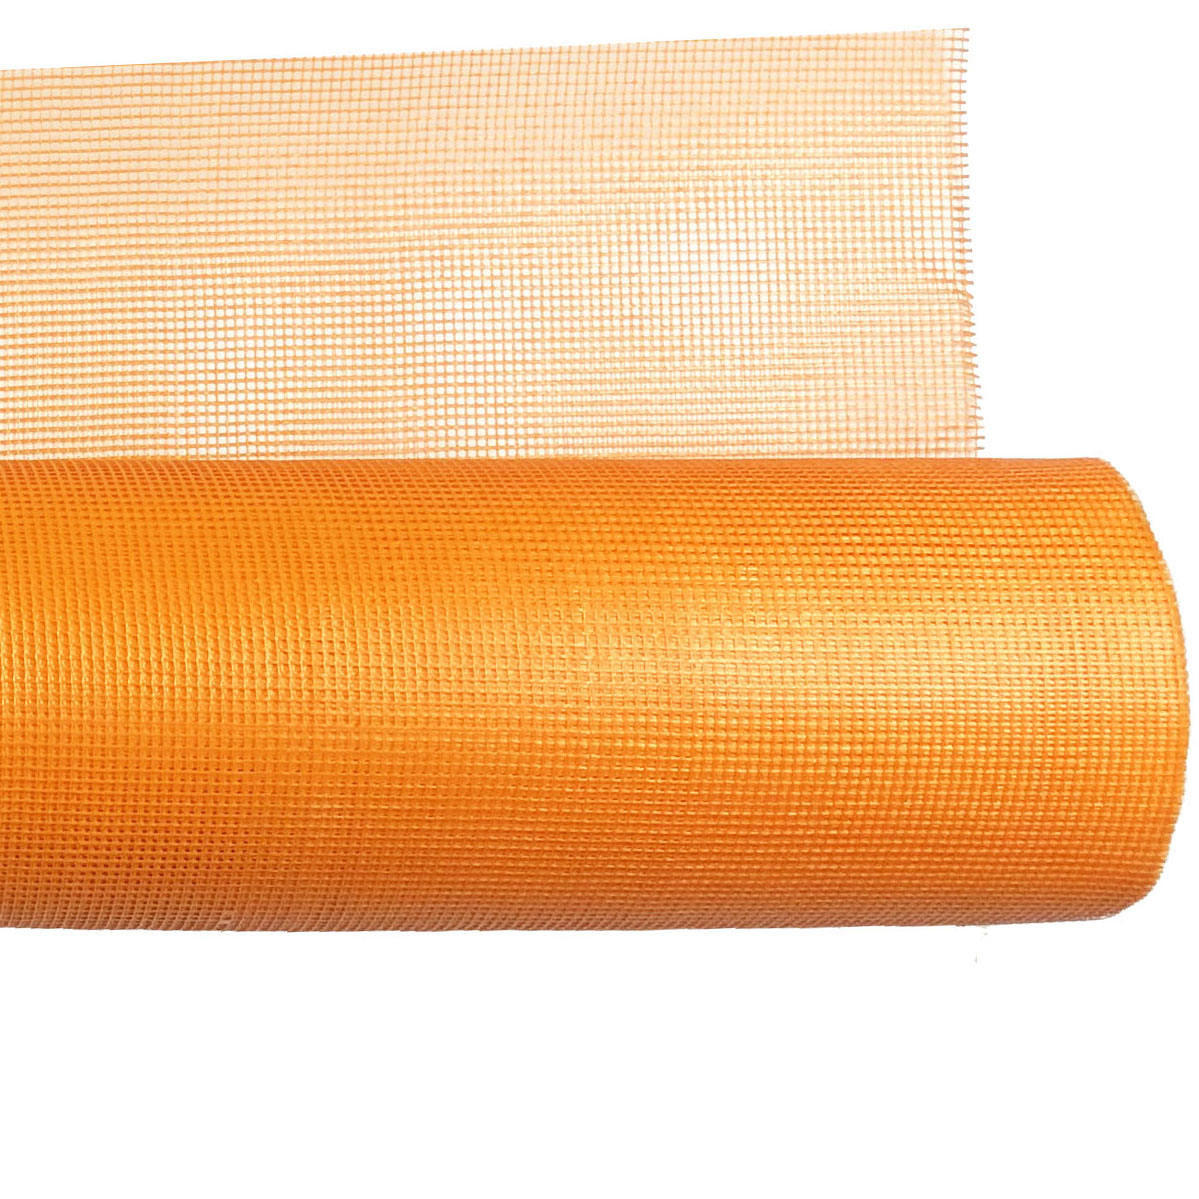 alkali-resistant fiberglass mesh: reinforced wall materials, alkali resistant, soft, good quality and low price